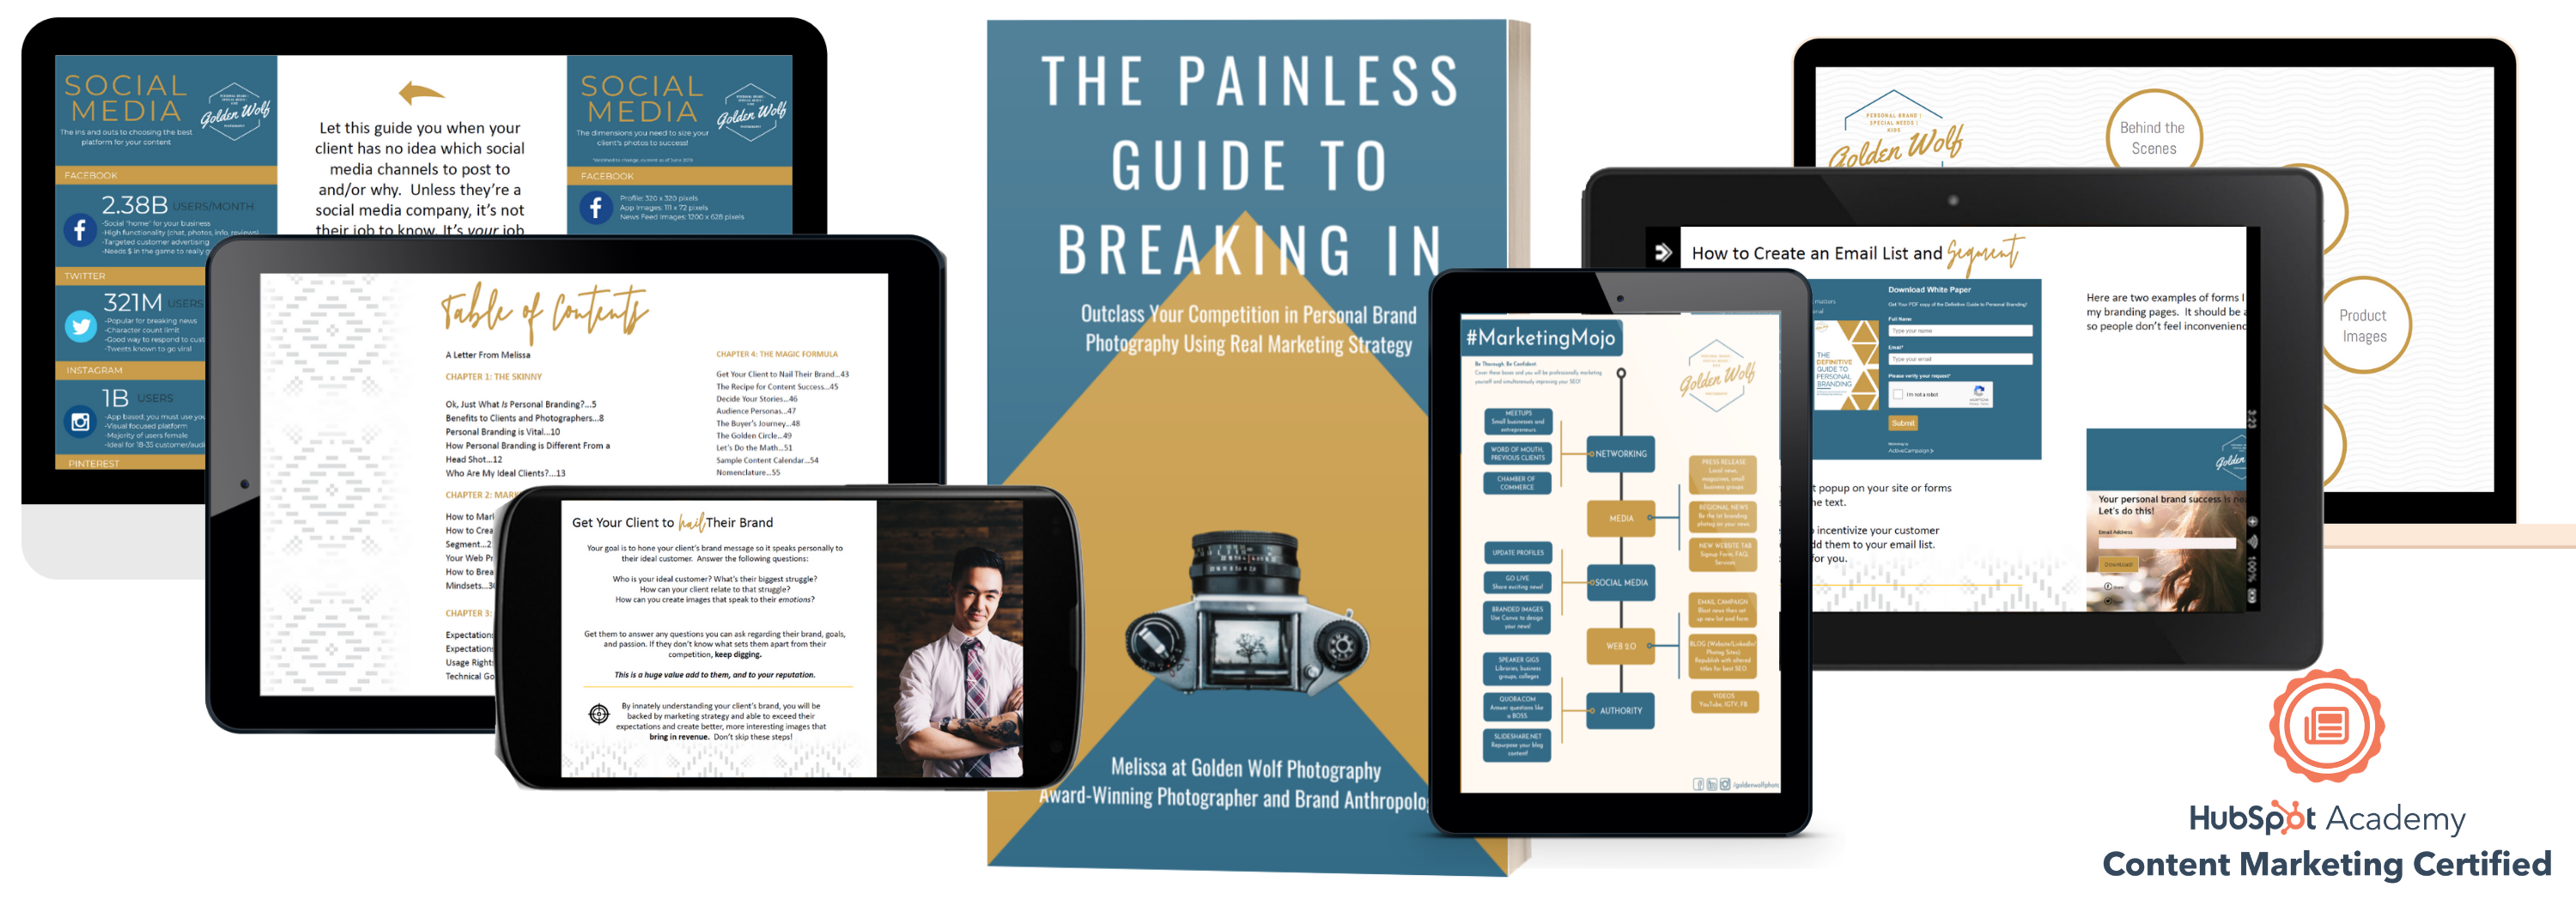 painless guide to breaking in